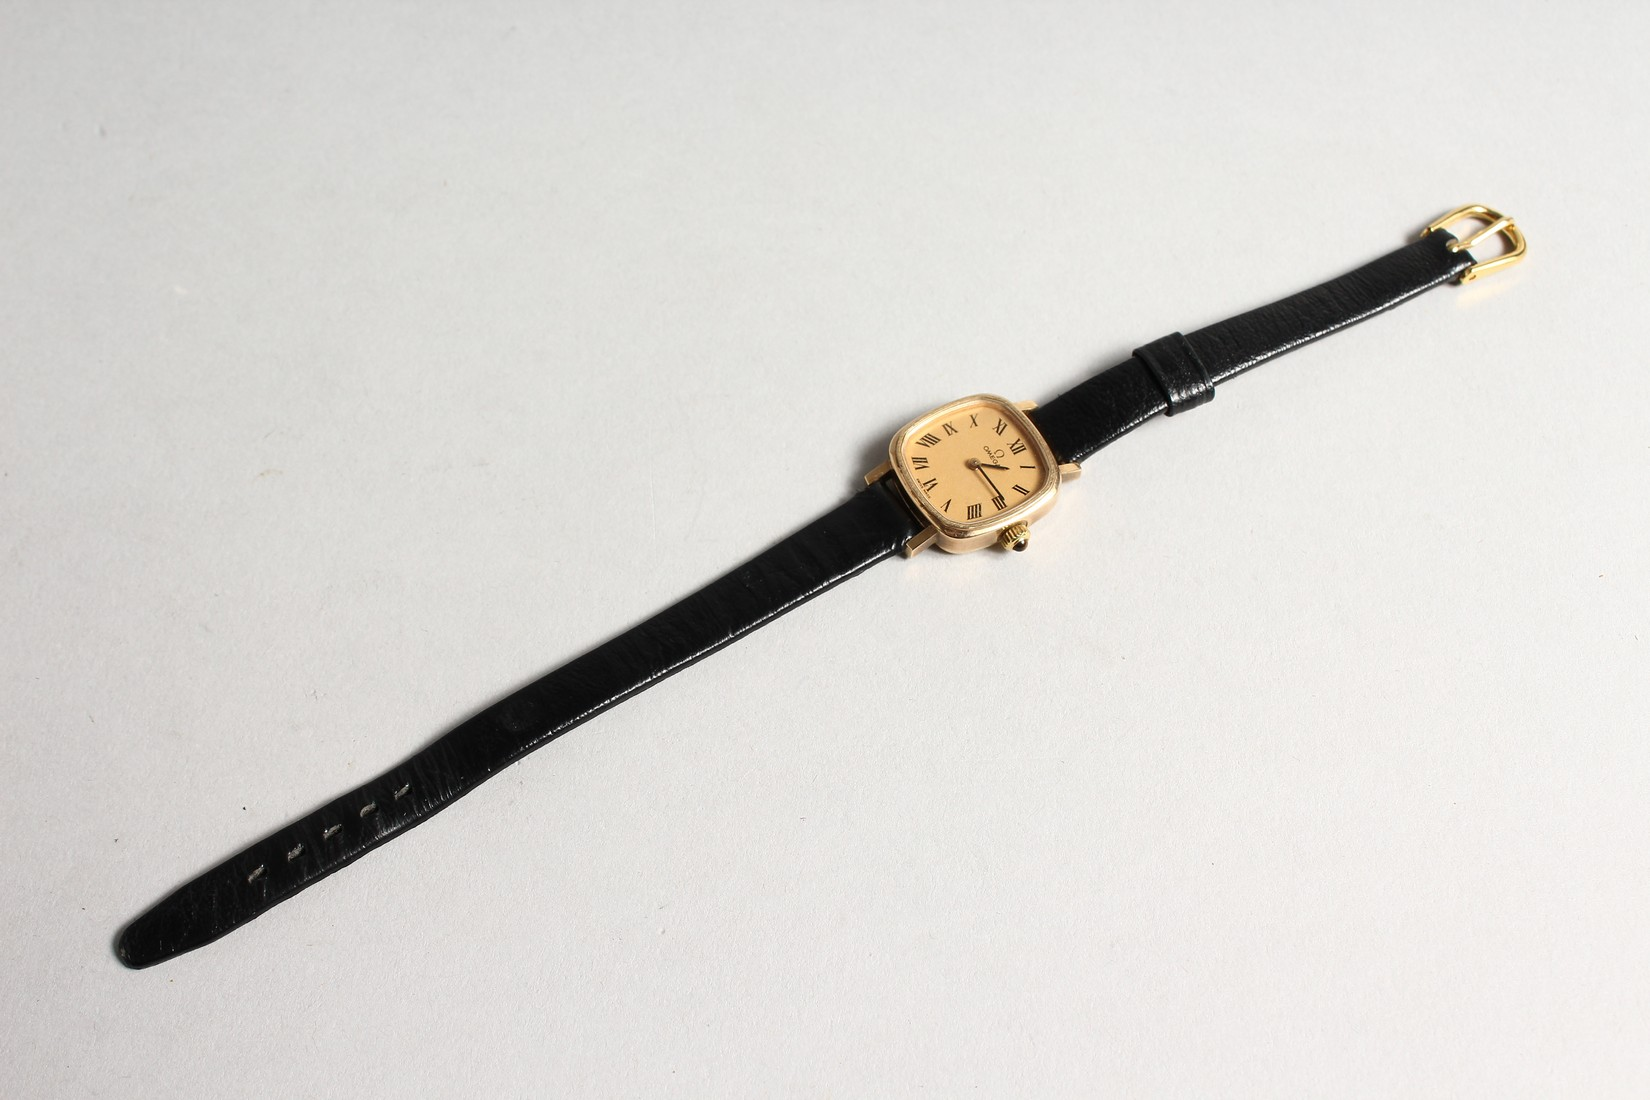 A LADIES VERY GOOD GOLD OMEGA WRIST WATCH with leather strap. - Image 2 of 4